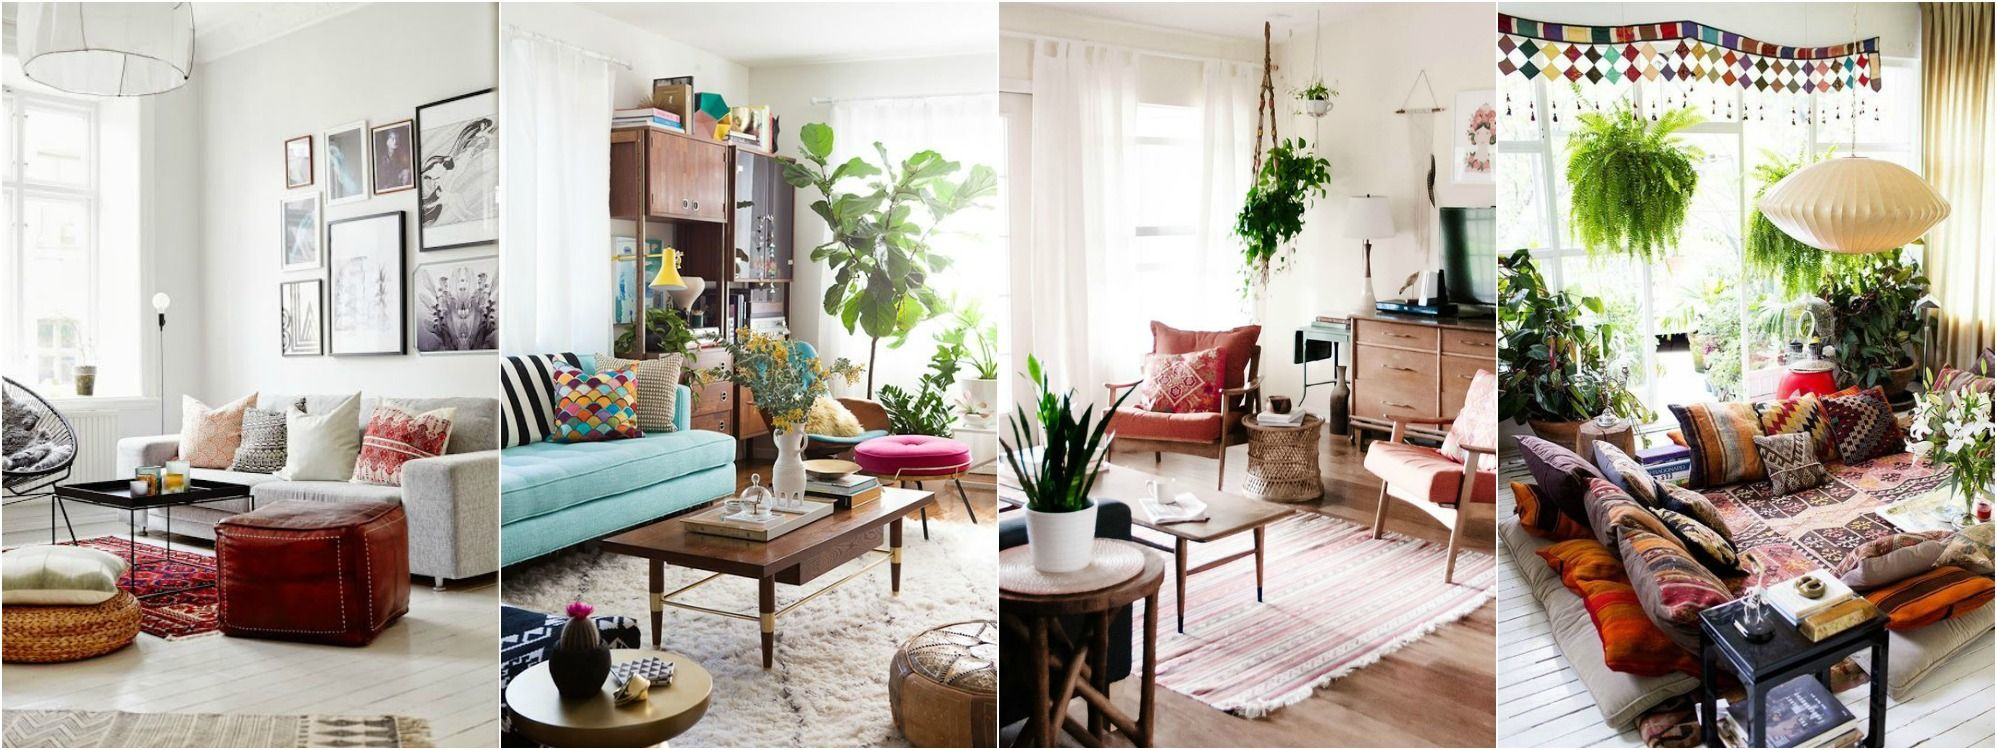 Best Boho Chic Living Room Plans One Room Challenge Boho 400 x 300